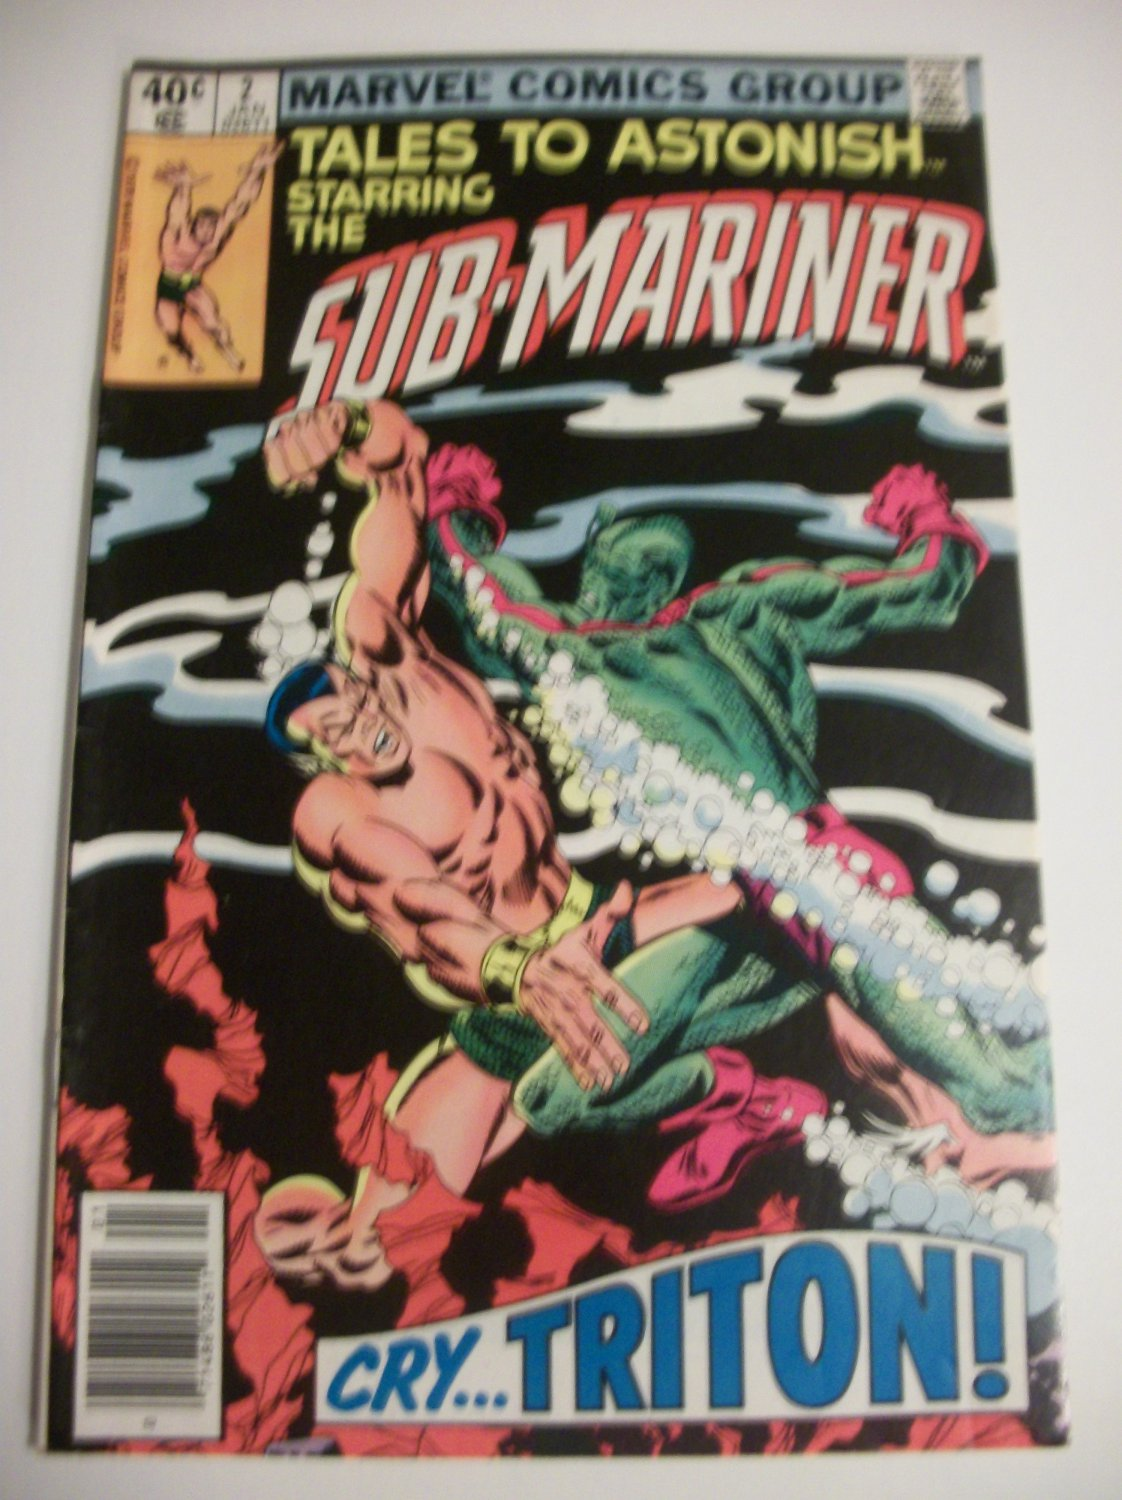 Tales to Astonish The Sub-mariner #2 Cry..Triton!